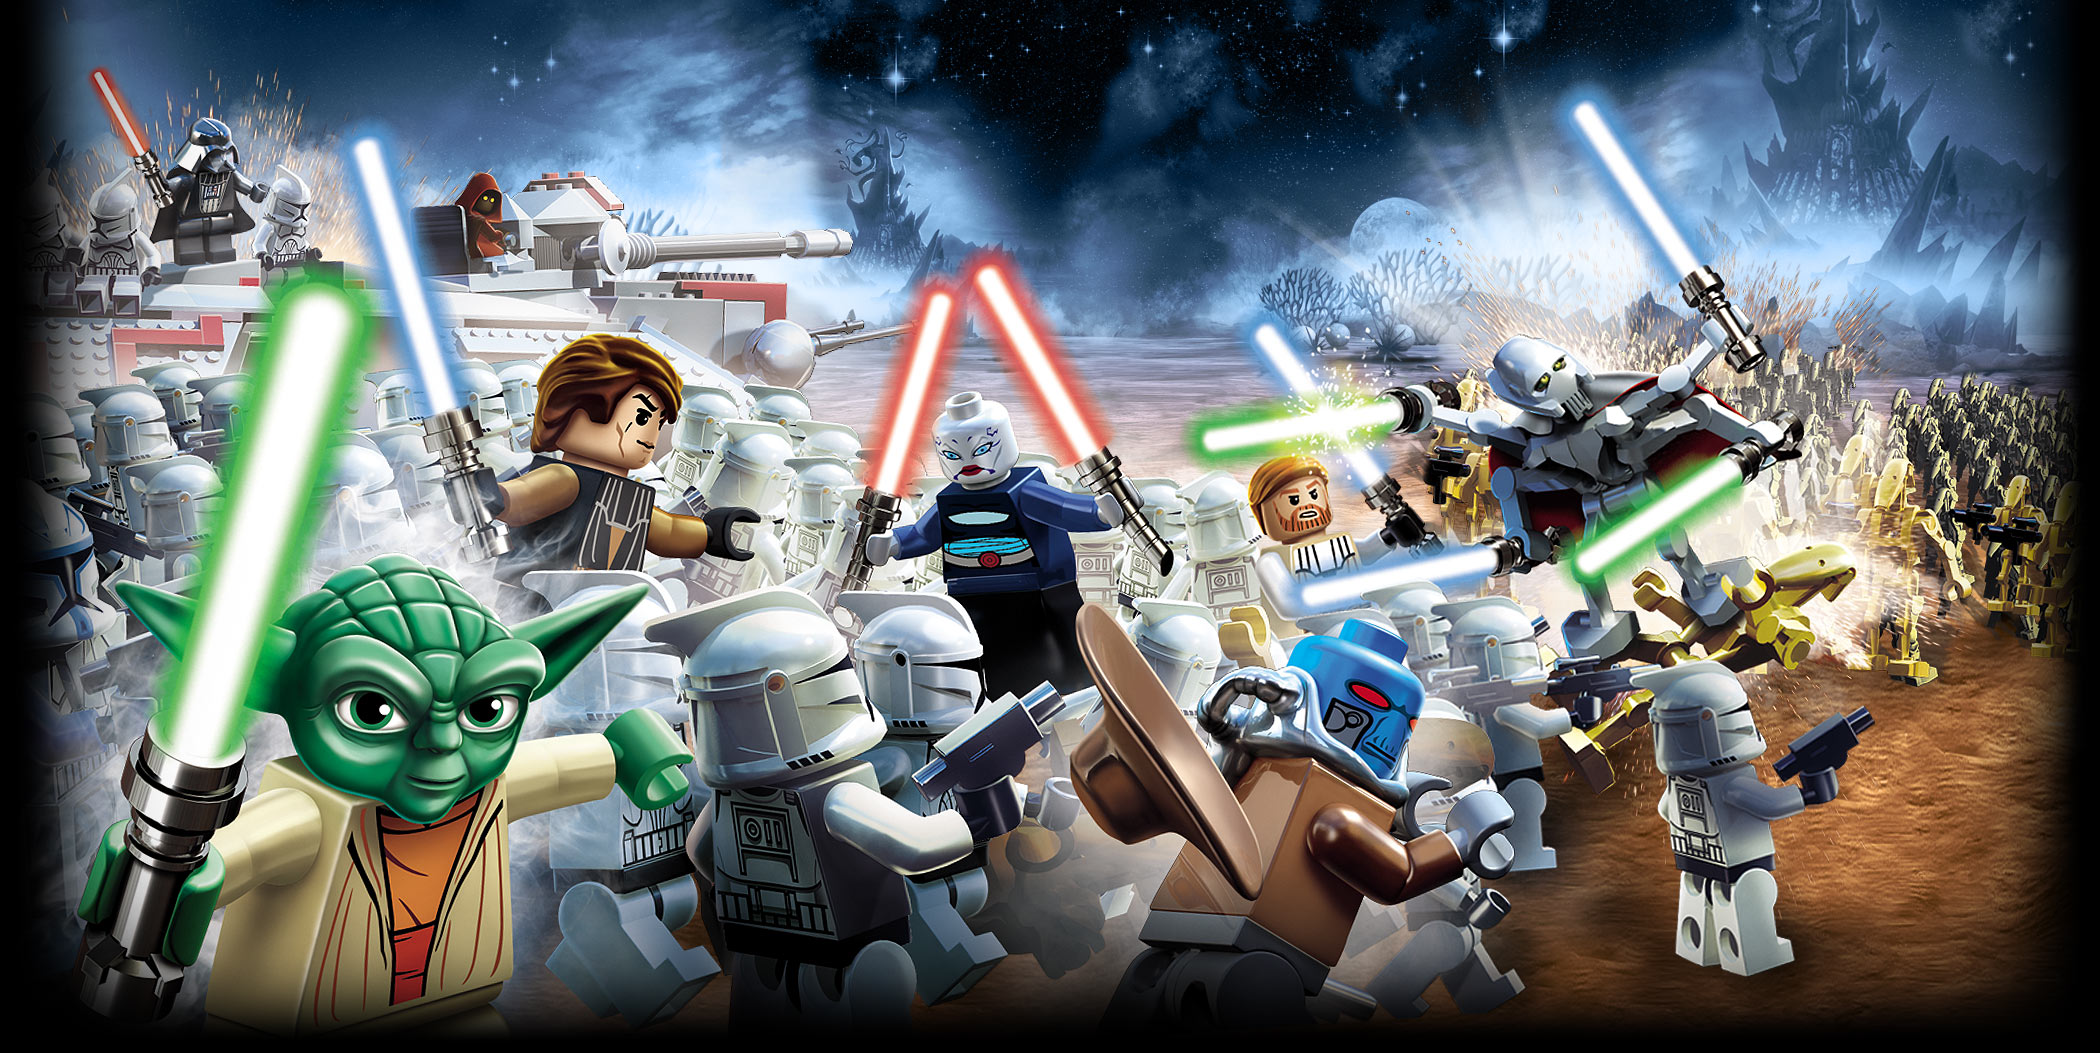 https://www.feralinteractive.com/data/games/legostarwarsiii/images/features/battle.jpg